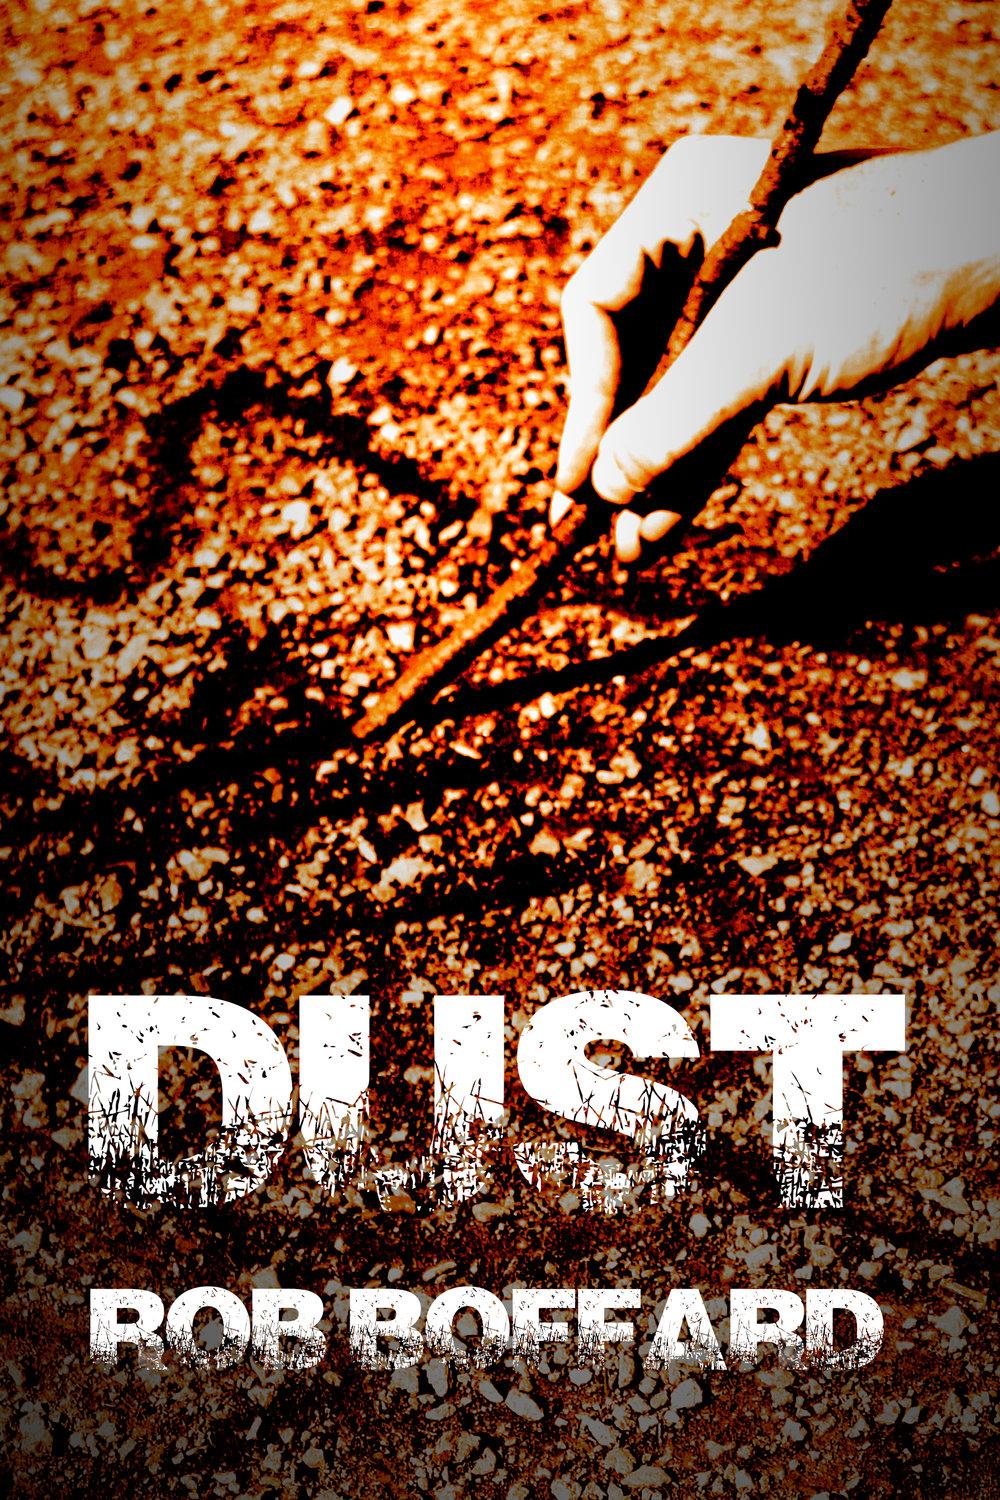 DUST - Read these three terrifying stories from the internationally acclaimed author of TRACER, ZERO-G and IMPACT.An inmate in a maximum security prison develops terrifying abilities. A sound engineer accidentally summons a demon. And two car thieves get more than they bargained for when they steal a witchdoctor's car…These are some the short stories published when I was first getting started with making things up. They date from 2013 and 2014, and I think they're pretty good. Good enough that I collected them into a single volume, available on Amazon for a knockdown price.Buy It!